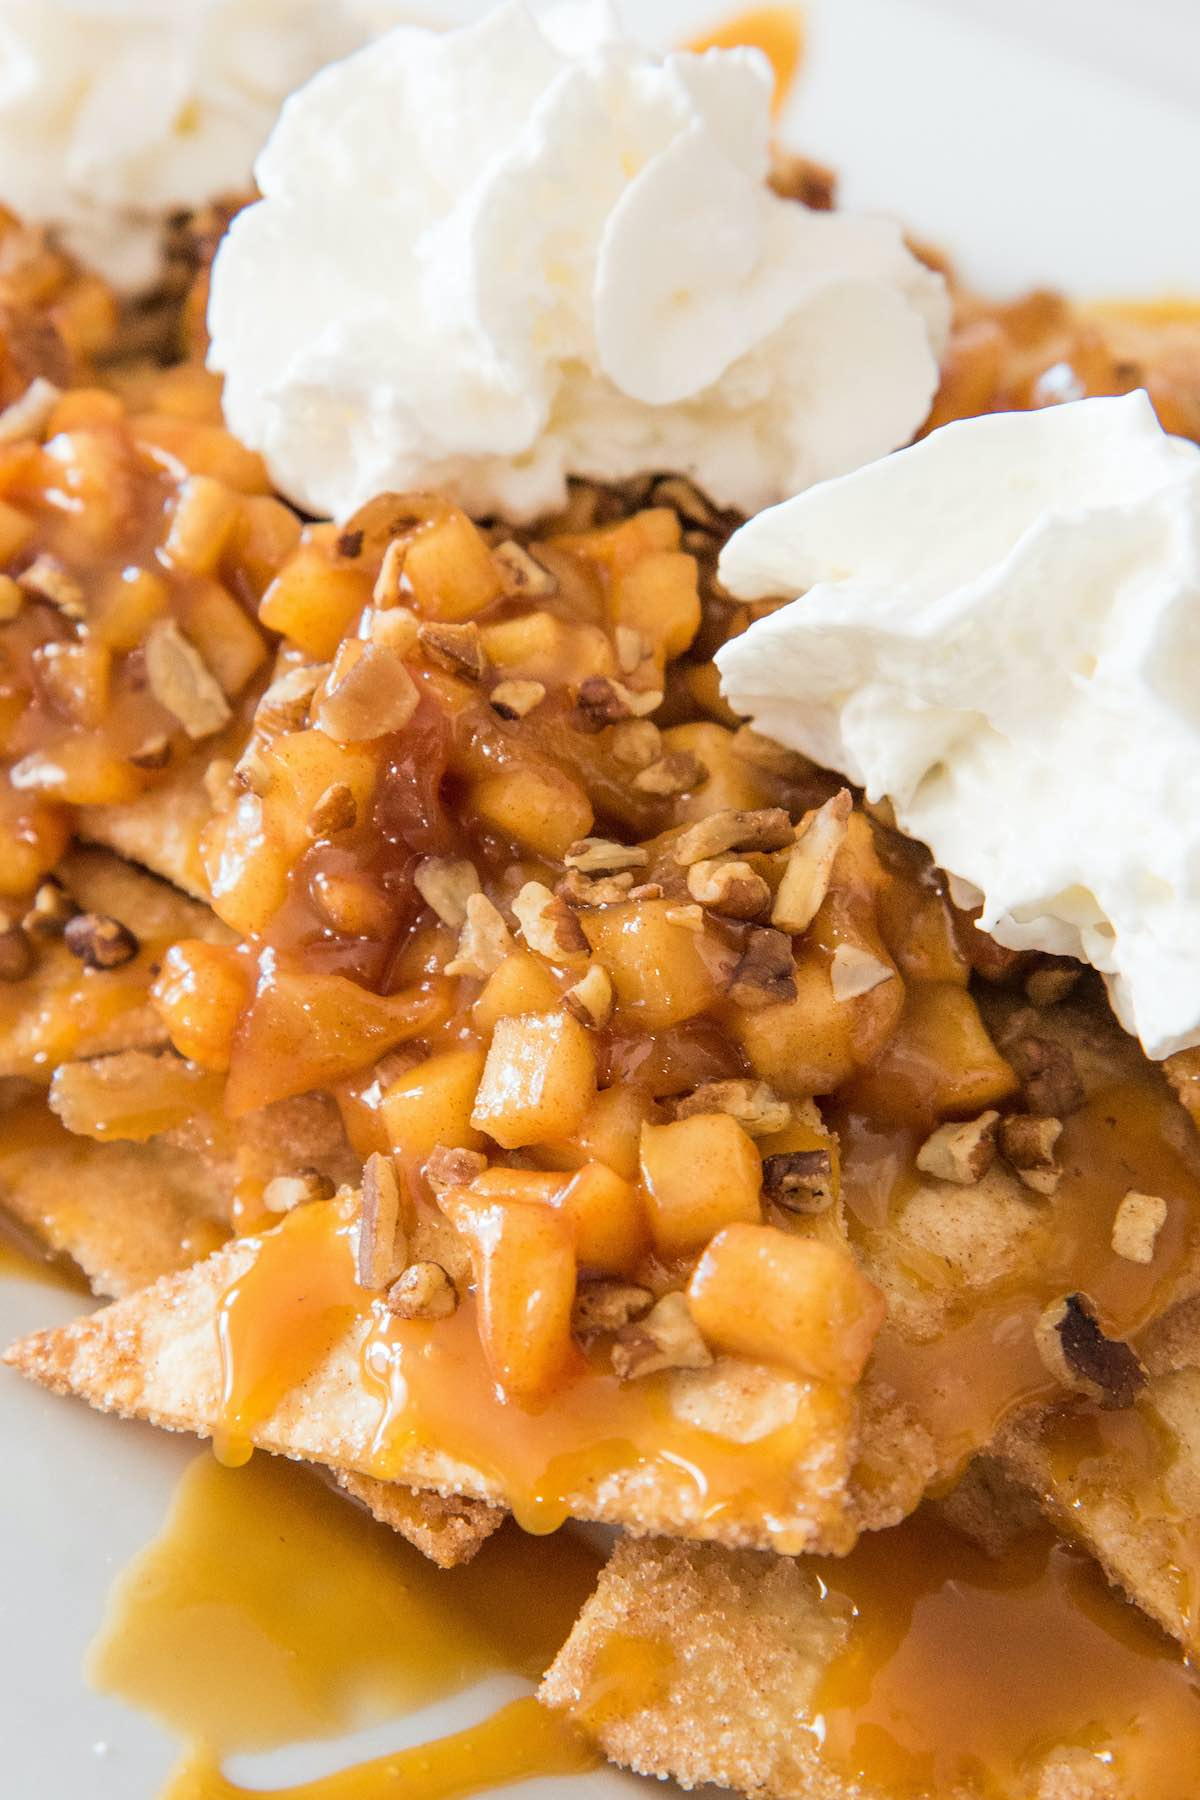 Apple Pie Nachos topped with whipped cream